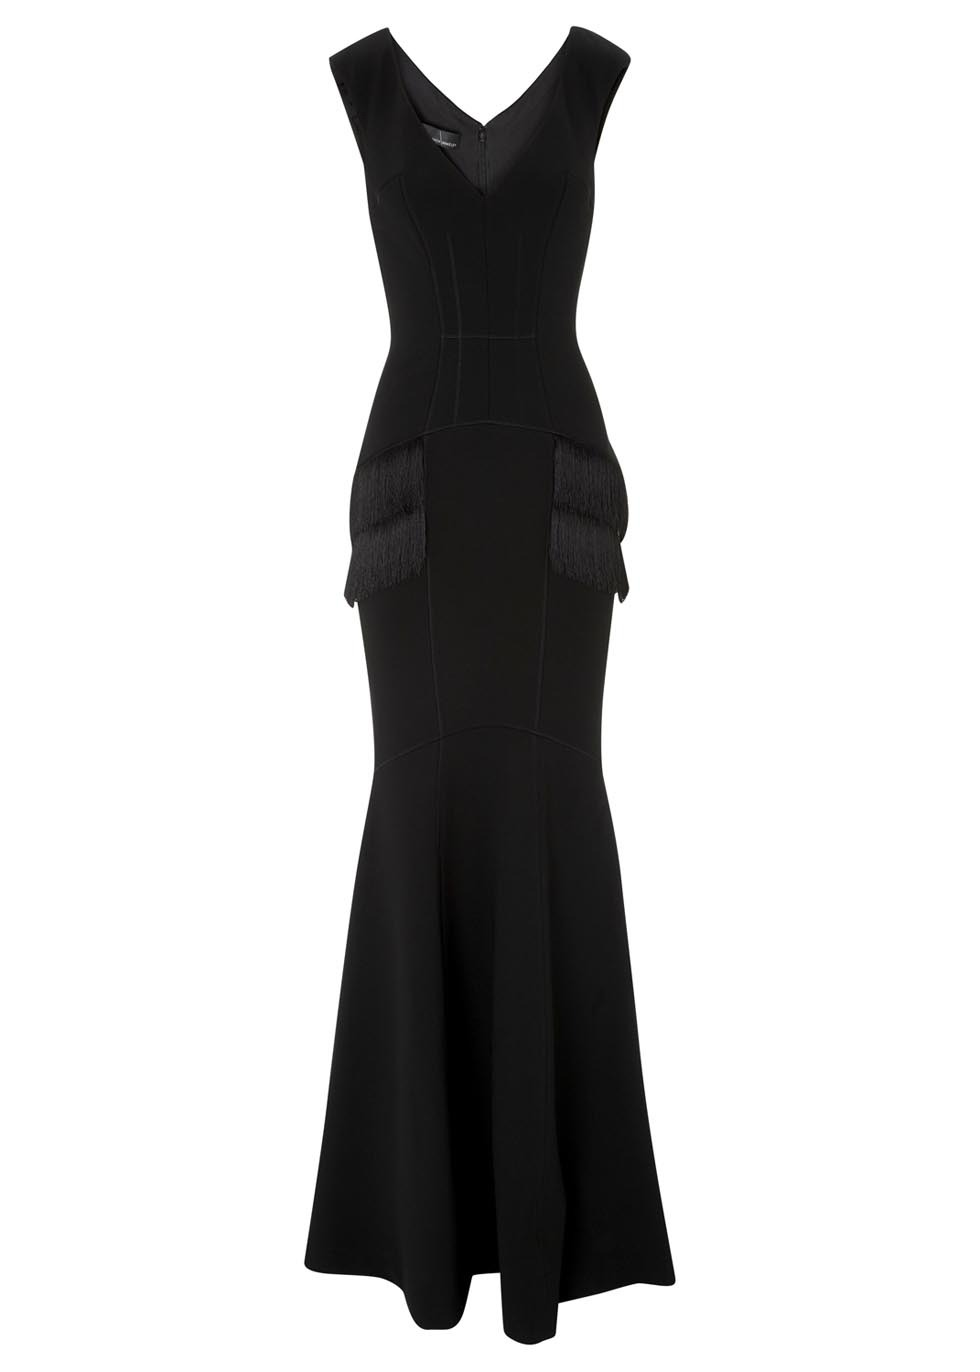 Black Fringed Jersey Crepe Gown - style: ballgown; neckline: low v-neck; fit: tailored/fitted; pattern: plain; sleeve style: sleeveless; back detail: back revealing; predominant colour: black; length: floor length; occasions: occasion; sleeve length: sleeveless; texture group: crepes; pattern type: fabric; embellishment: fringing; fibres: viscose/rayon - mix; season: s/s 2014; wardrobe: event; embellishment location: hip